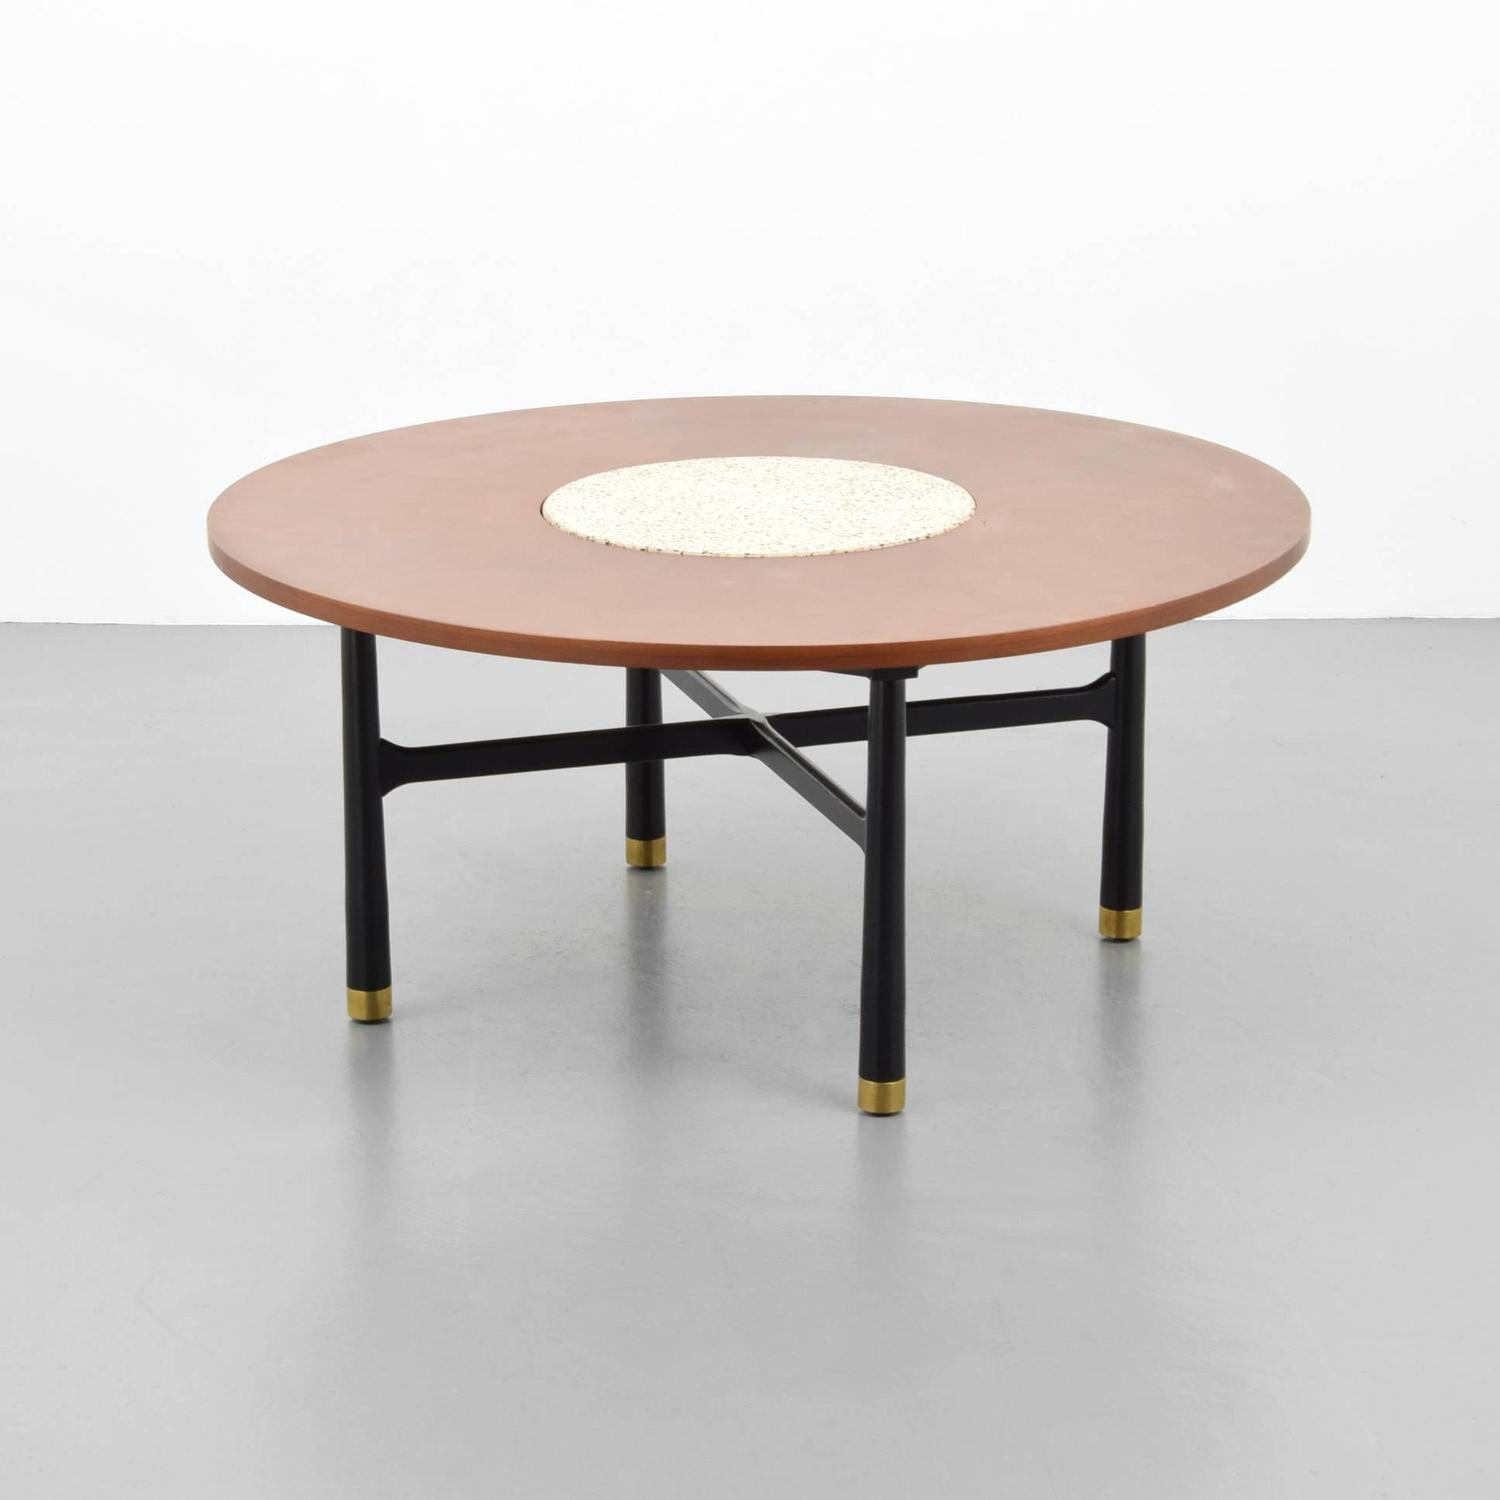 Harvey probber coffee table circa 1965 for sale at 1stdibs for Coffee tables harveys